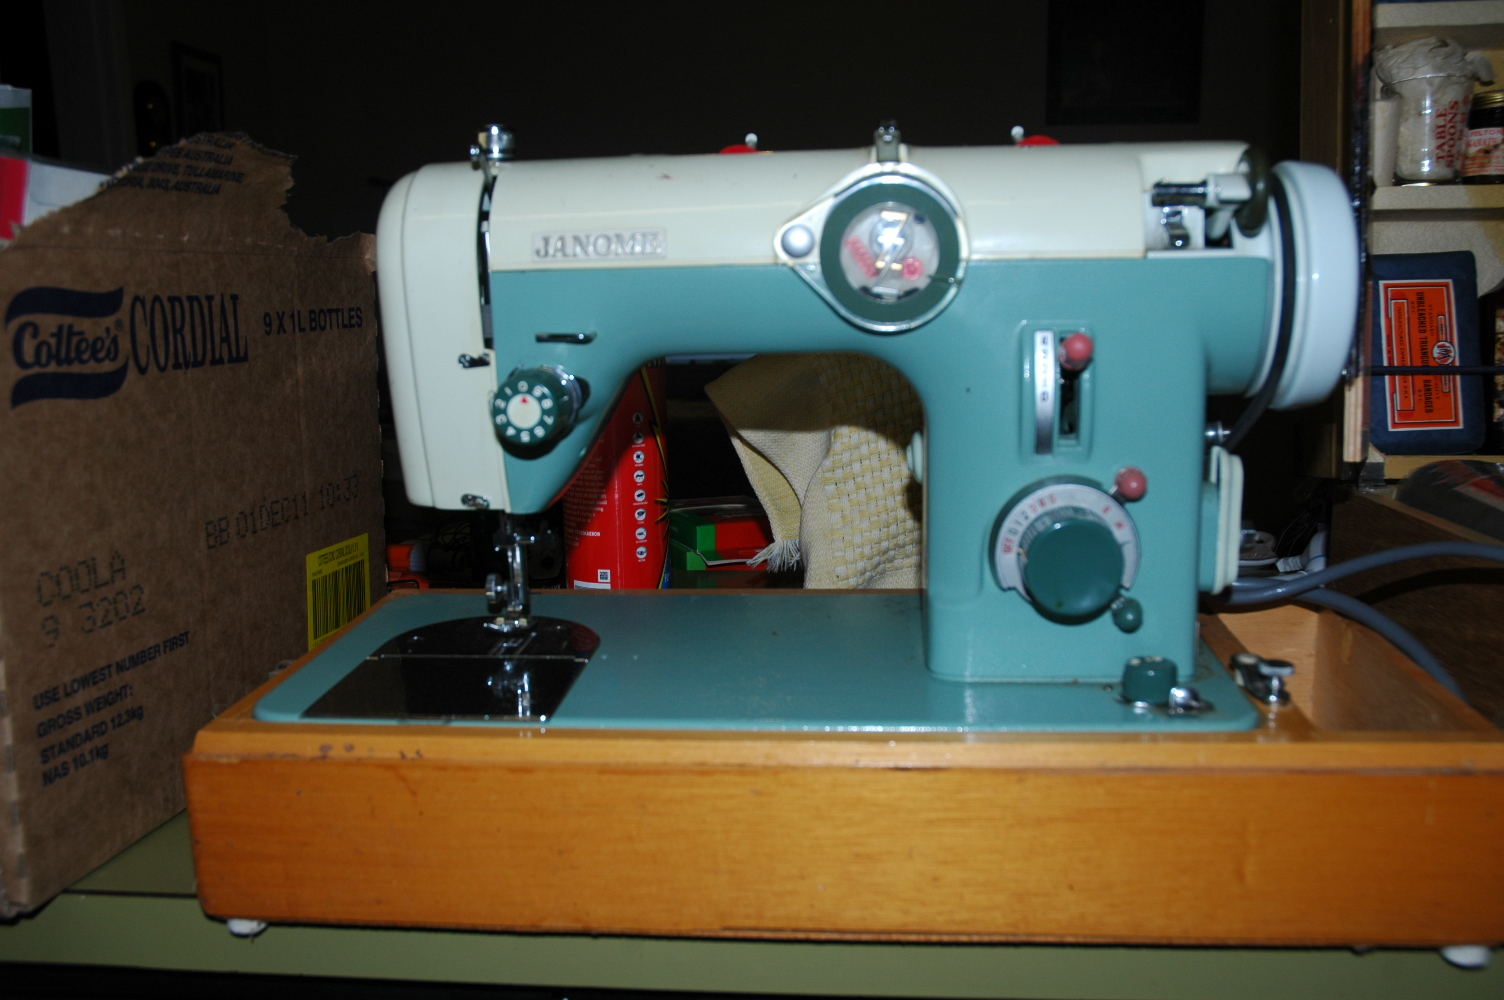 stirling janome sewing machine instructions